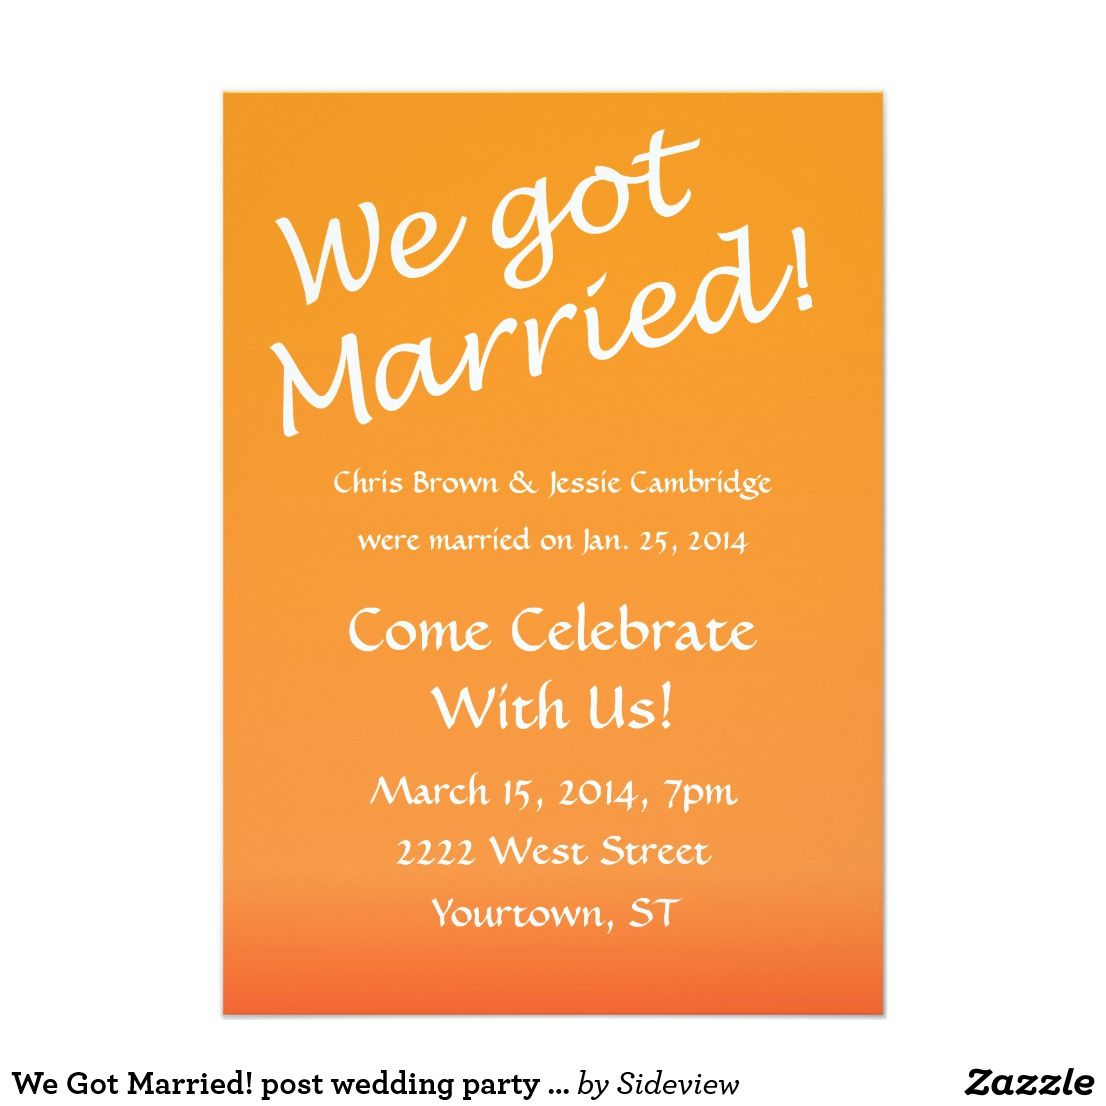 We Got Married Post Wedding Party Invitation Zazzle Com Wedding Celebration Invitation Wedding Party Invites Reception Invitation Wording